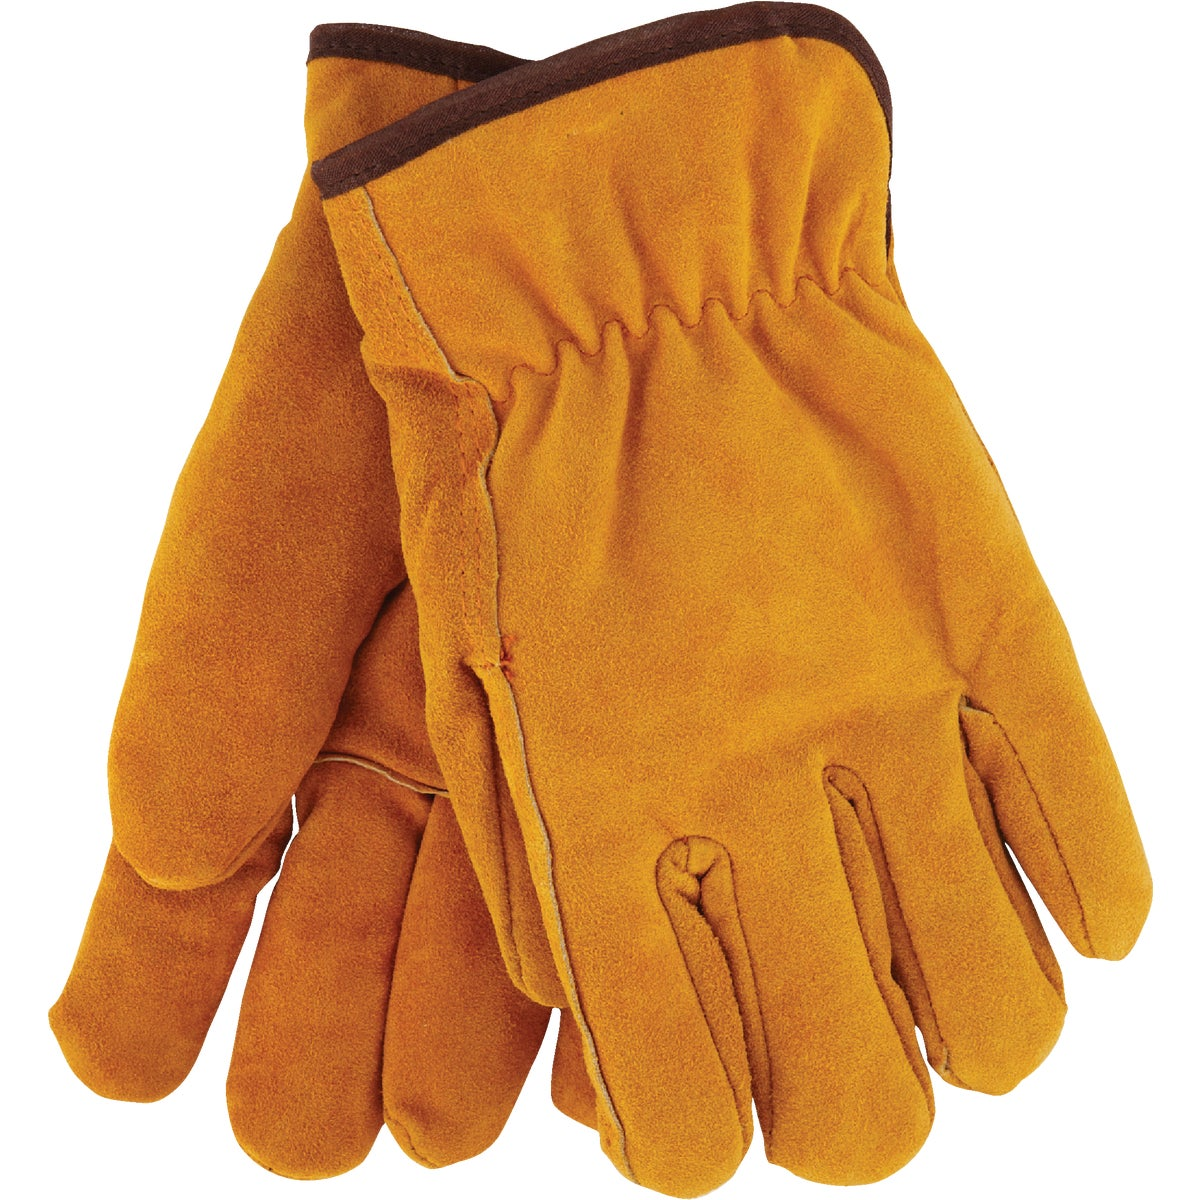 LRG LEATHER LINED GLOVE - 706490 by Do it Best